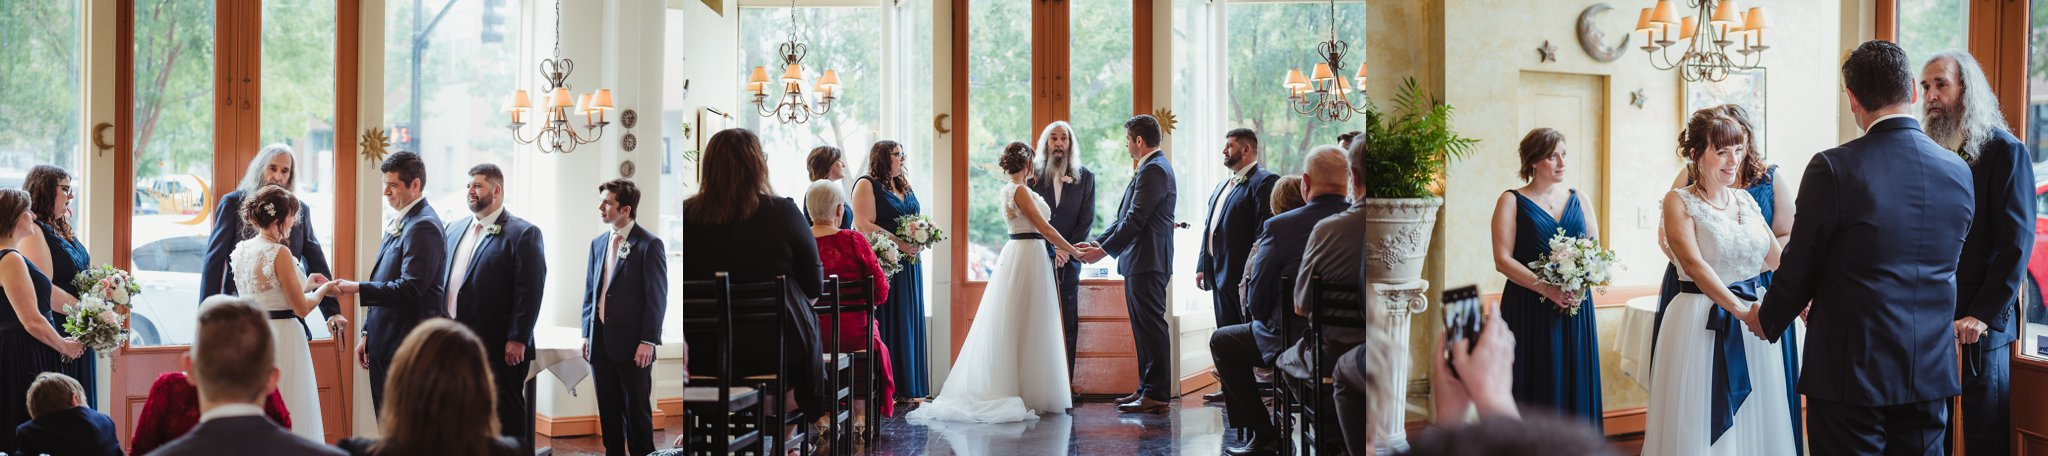 The bride and groom exchanged rings and vows during their wedding ceremony, pictures taken by Rose Trail Images at Caffe Luna in Raleigh, NC.